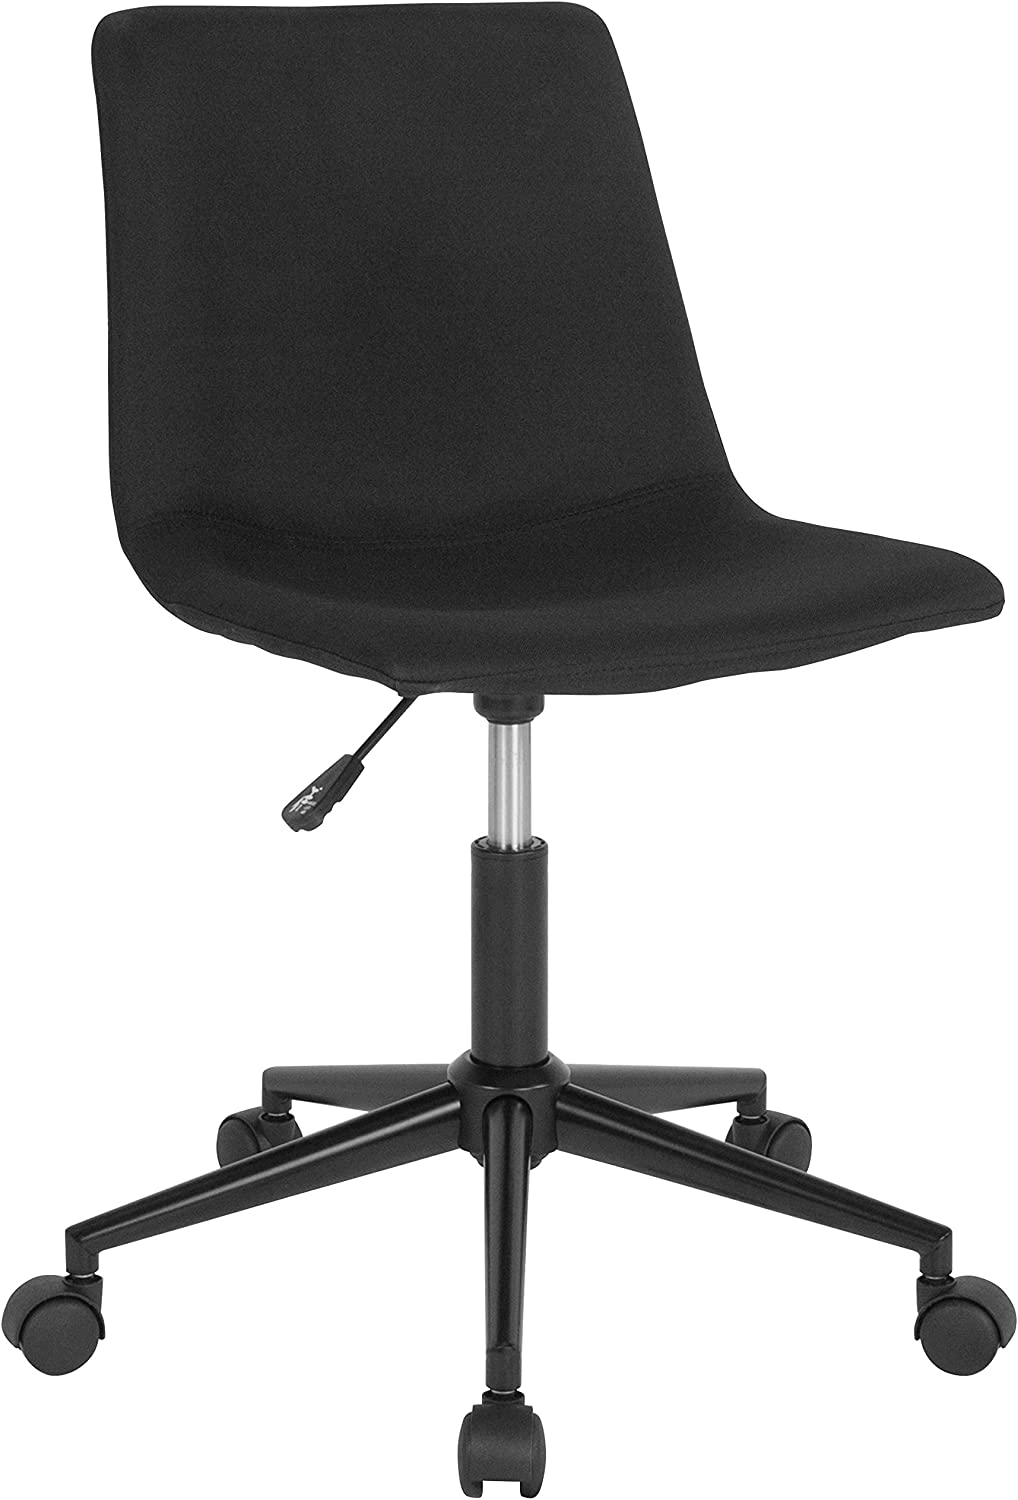 7 Best Armless Office Chairs For Space Saving Planetwifi